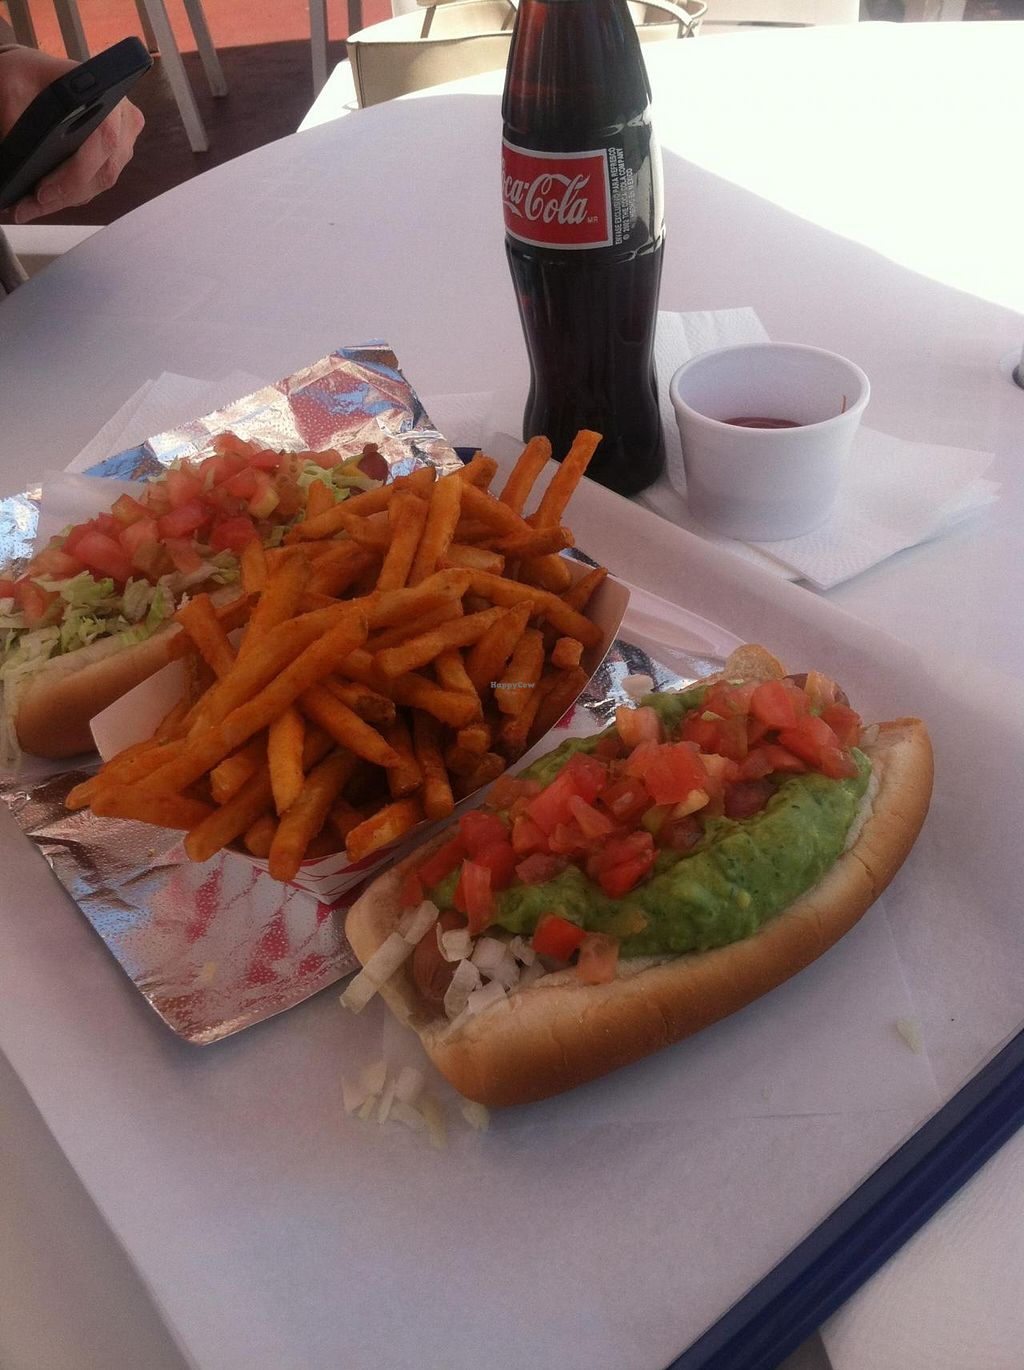 """Photo of Pink's Hot Dogs  by <a href=""""/members/profile/brandalock"""">brandalock</a> <br/>The Patt Morrison Baja Vegan Dog <br/> May 28, 2014  - <a href='/contact/abuse/image/47493/70926'>Report</a>"""